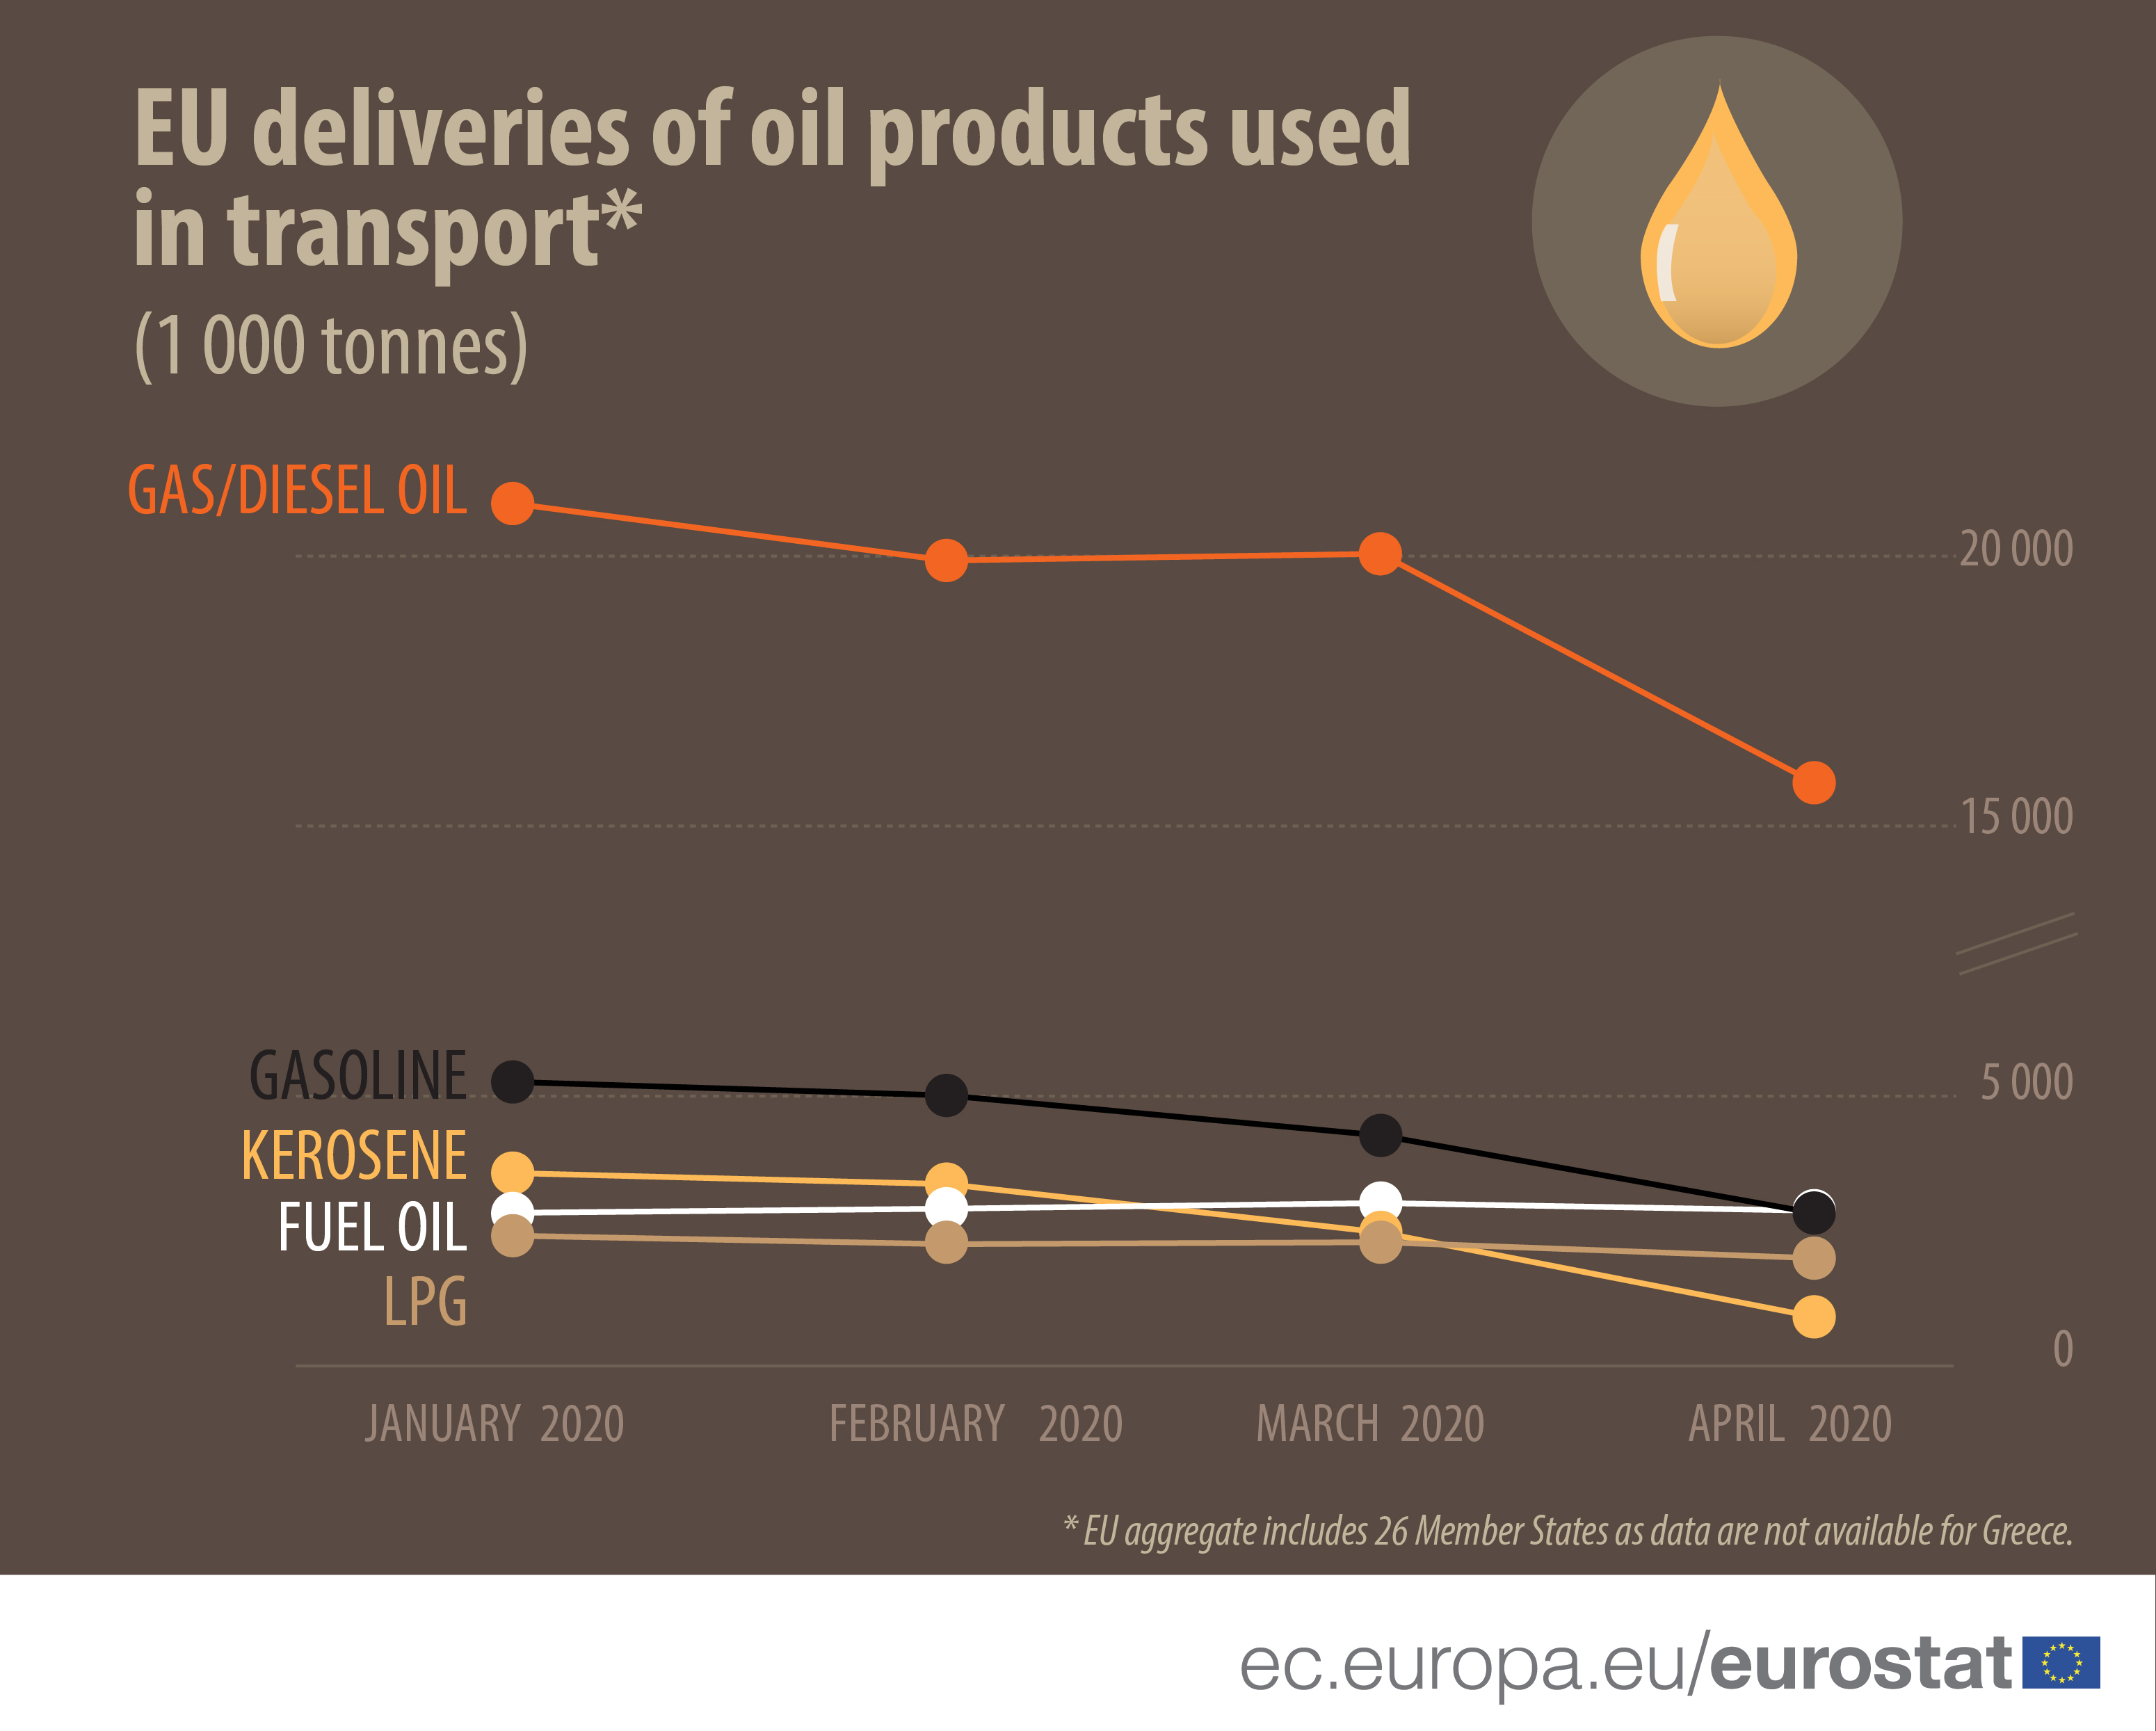 EU deliveries of oil products used in transport (1 000 tonnes)